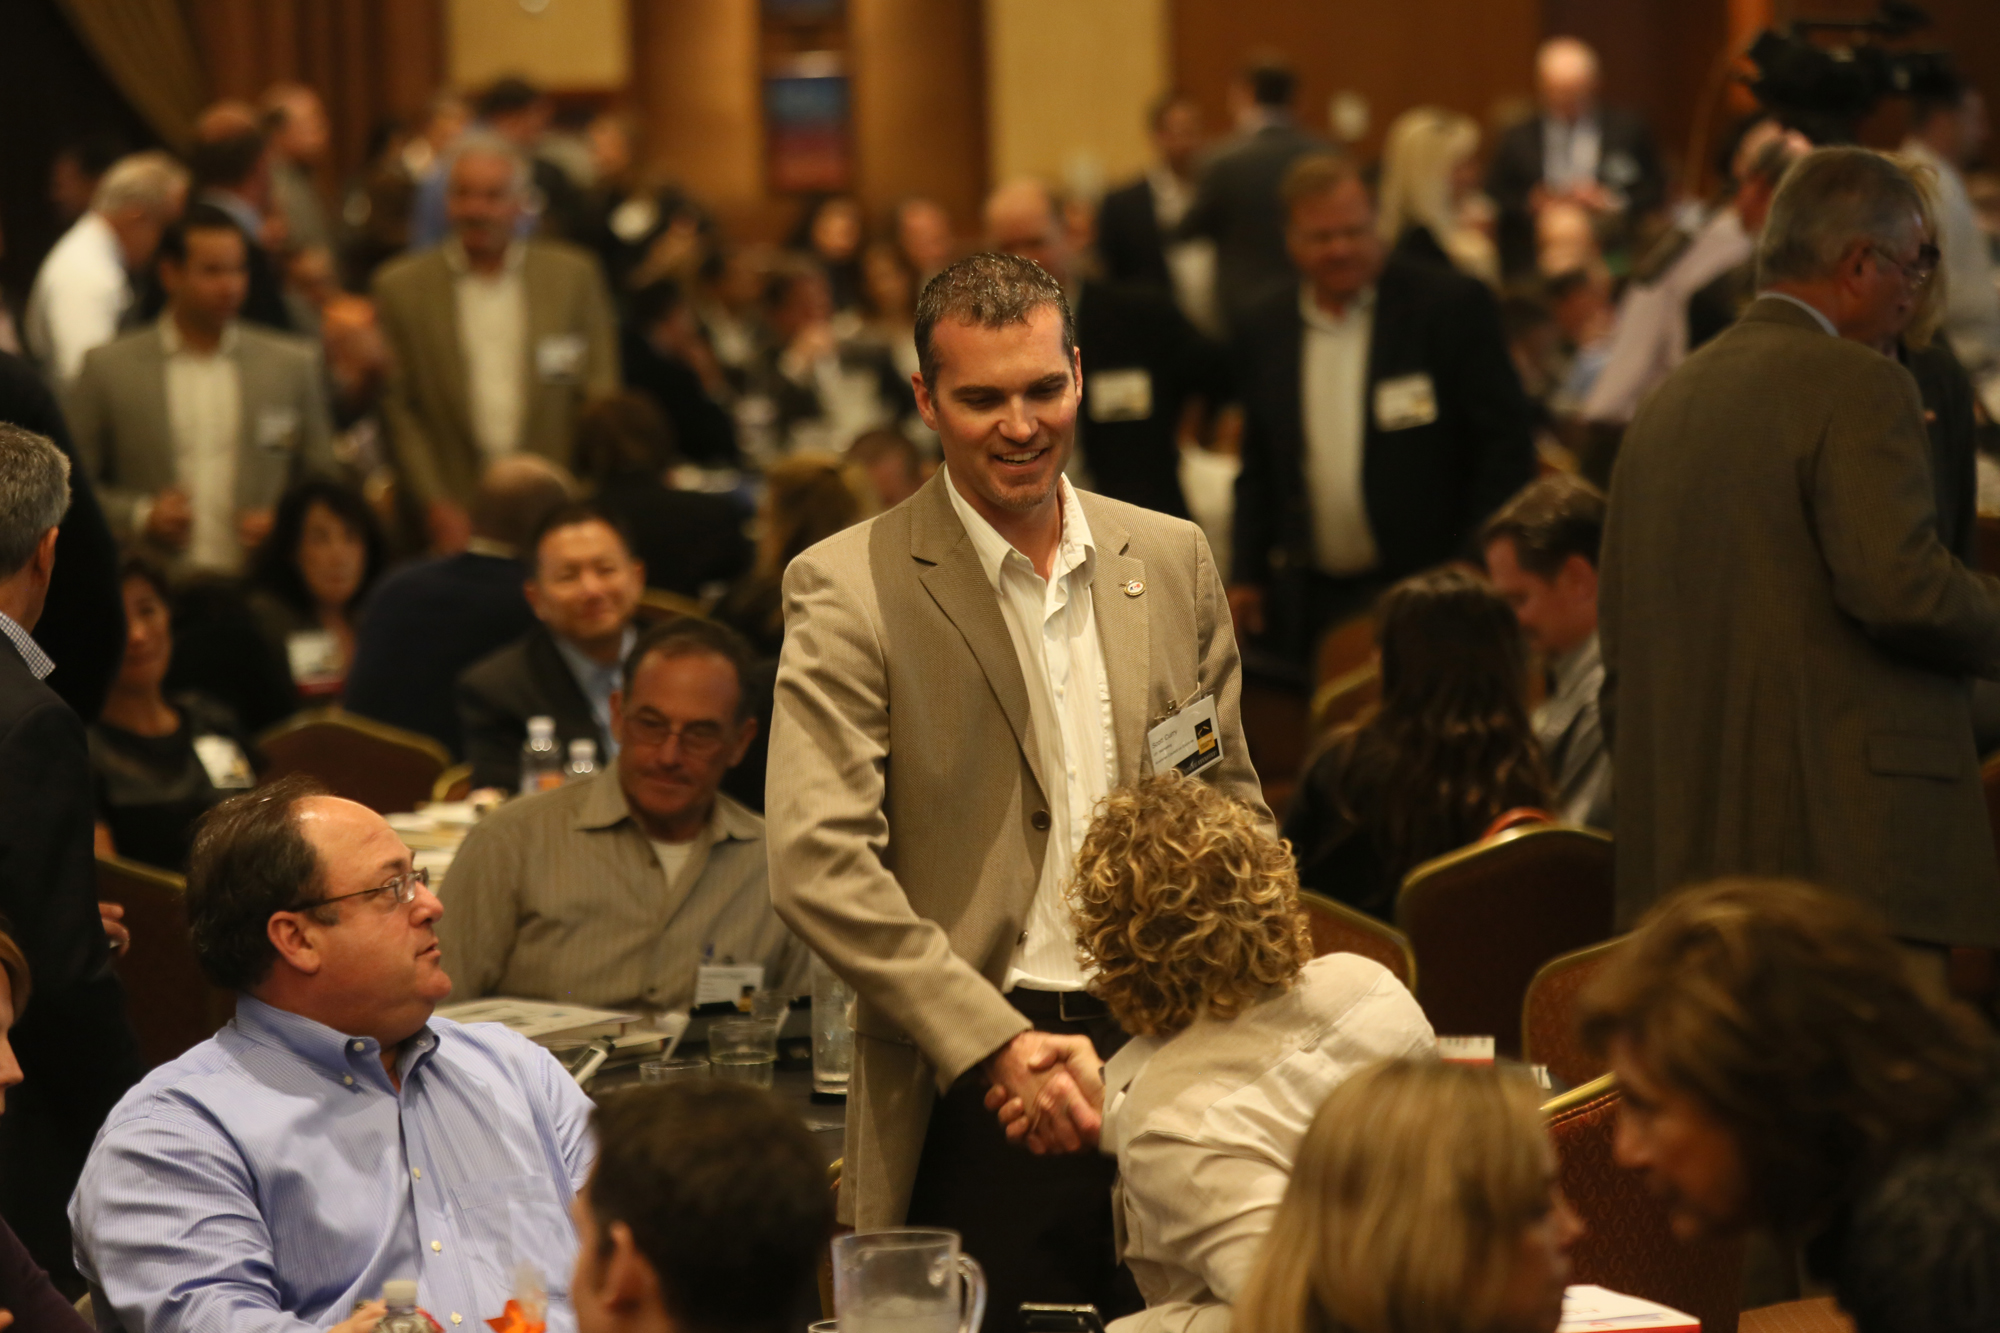 Vistage_Networking_Photo_55